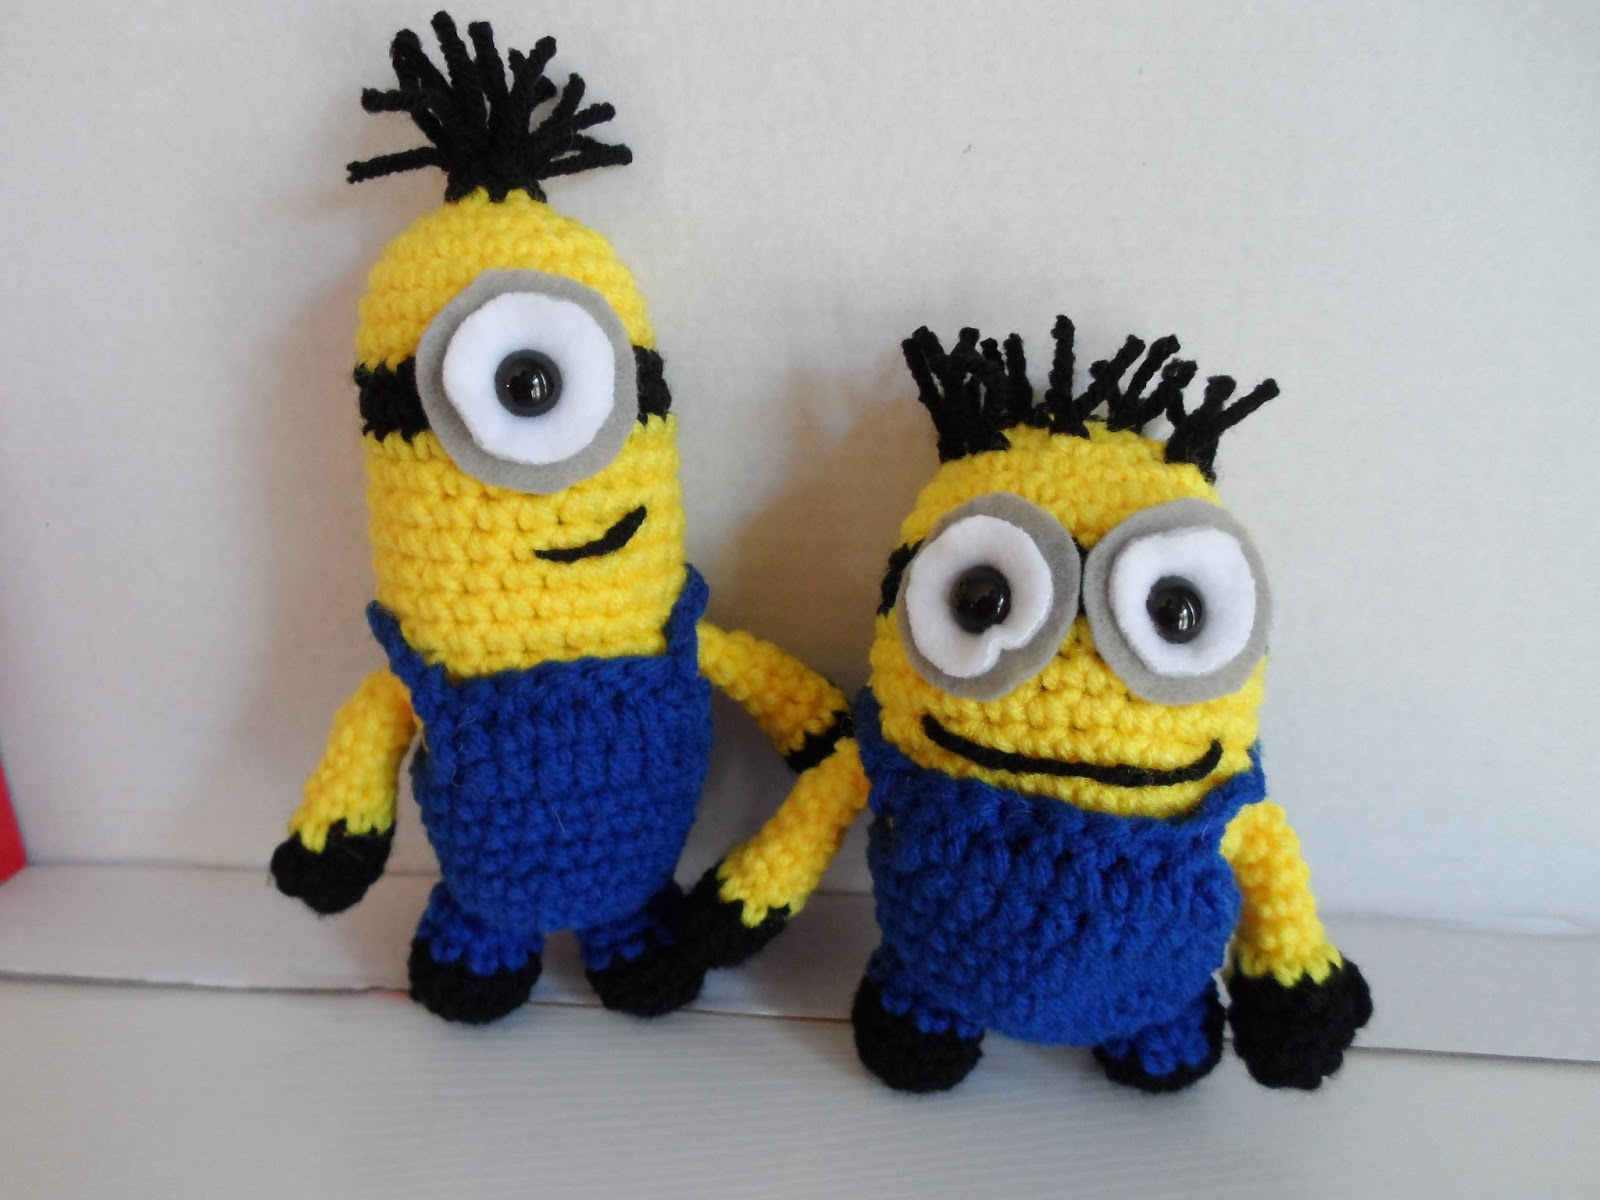 Crochet Patterns Minions : free minion crochet pattern